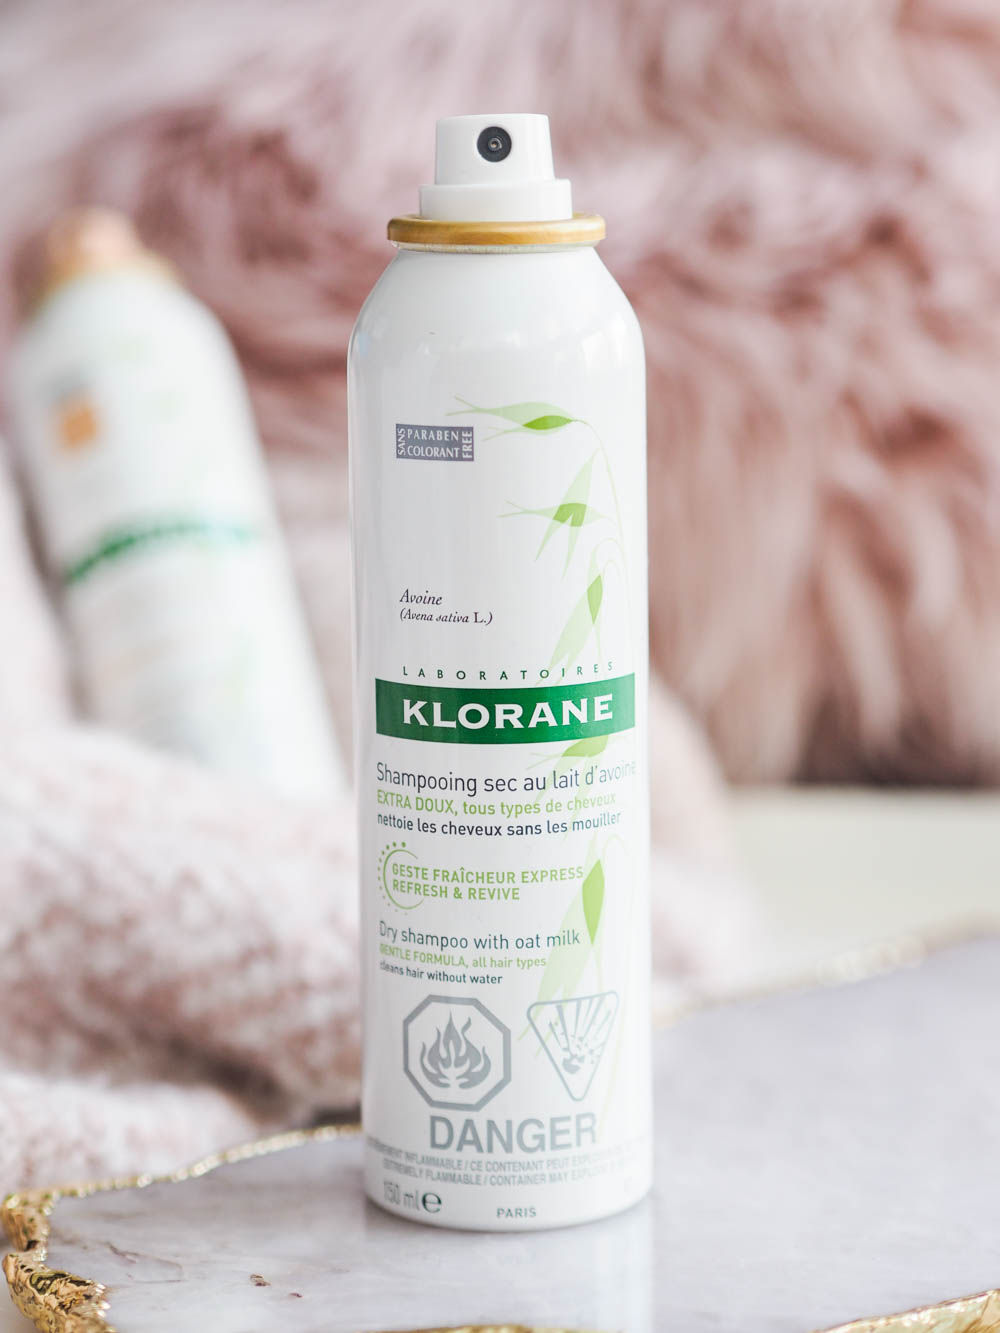 7 reasons to love the Klorane dry shampoo